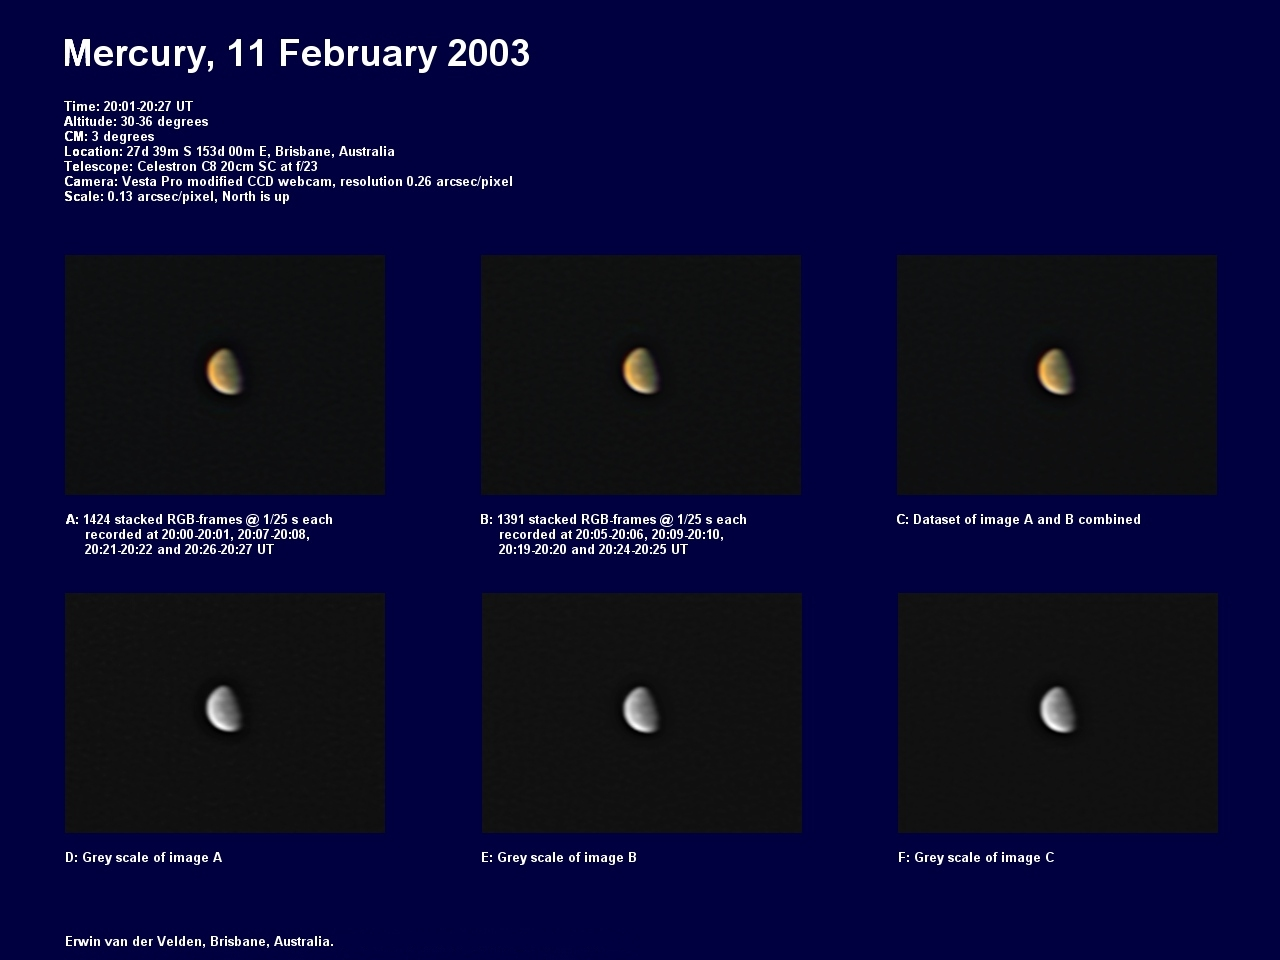 Mercury image captured on the 11th of February 2003